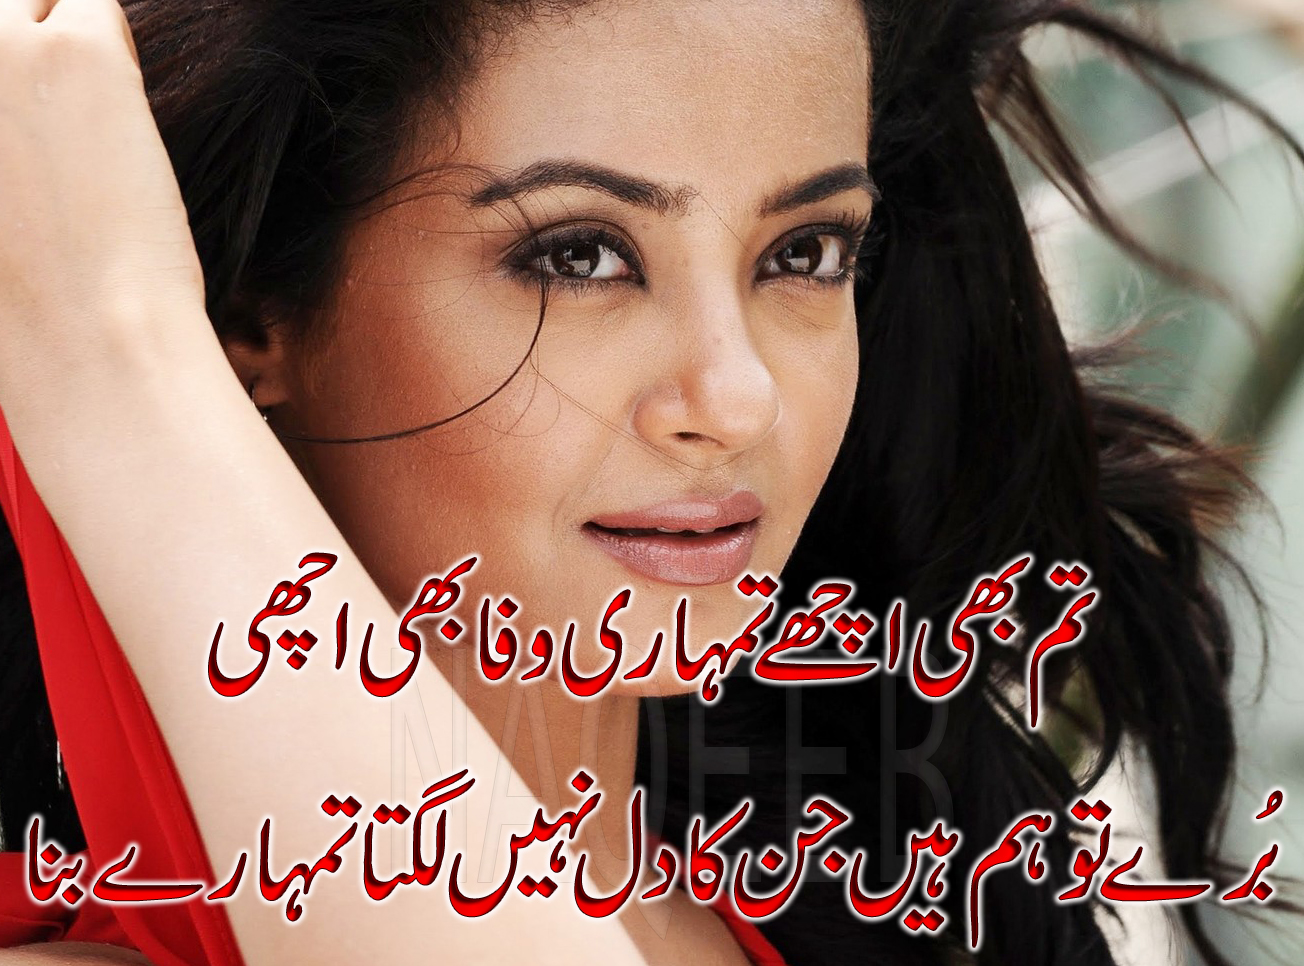 poetry love Read through our collection and find the best,funny,sweet,short and cute love poems for himthese modern poems help you express your feel in an elegant way.